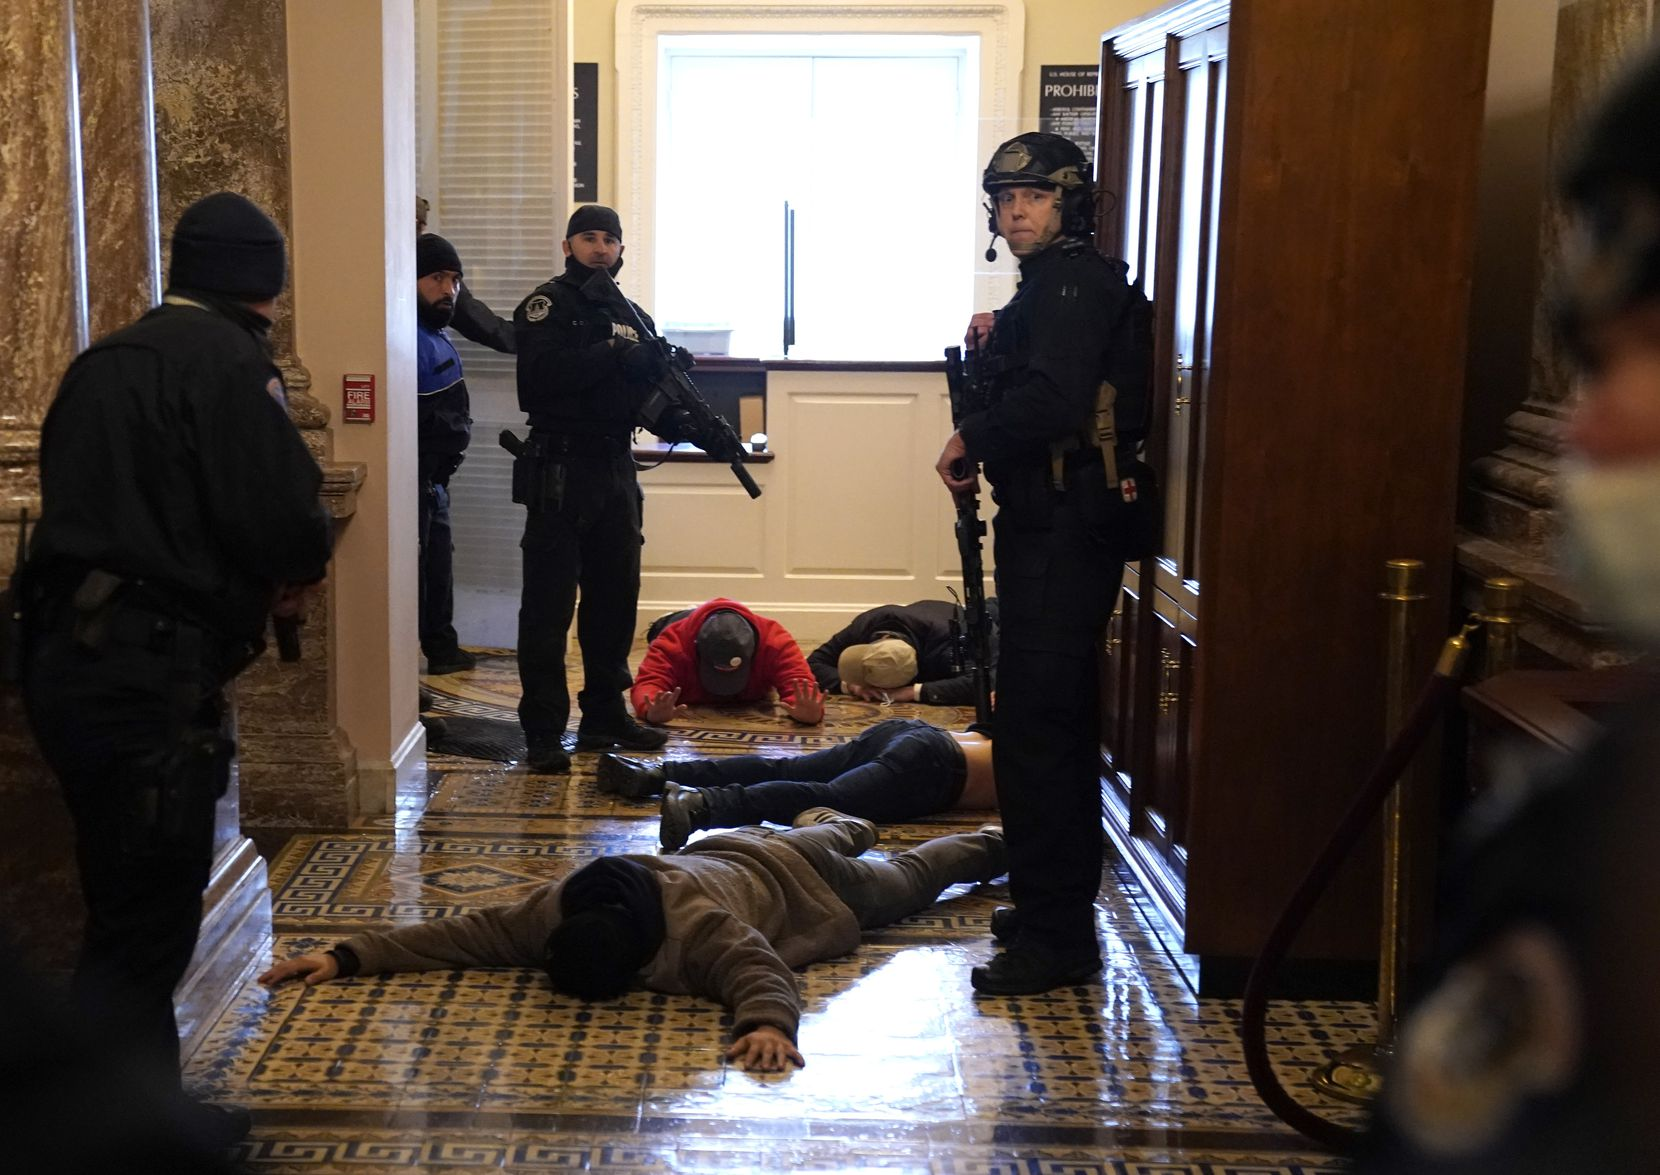 WASHINGTON, DC - JANUARY 06: U.S. Capitol Police stand detain protesters outside of the House Chamber during a joint session of Congress on January 06, 2021 in Washington, DC. Congress held a joint session today to ratify President-elect Joe Biden's 306-232 Electoral College win over President Donald Trump. A group of Republican senators said they would reject the Electoral College votes of several states unless Congress appointed a commission to audit the election results.